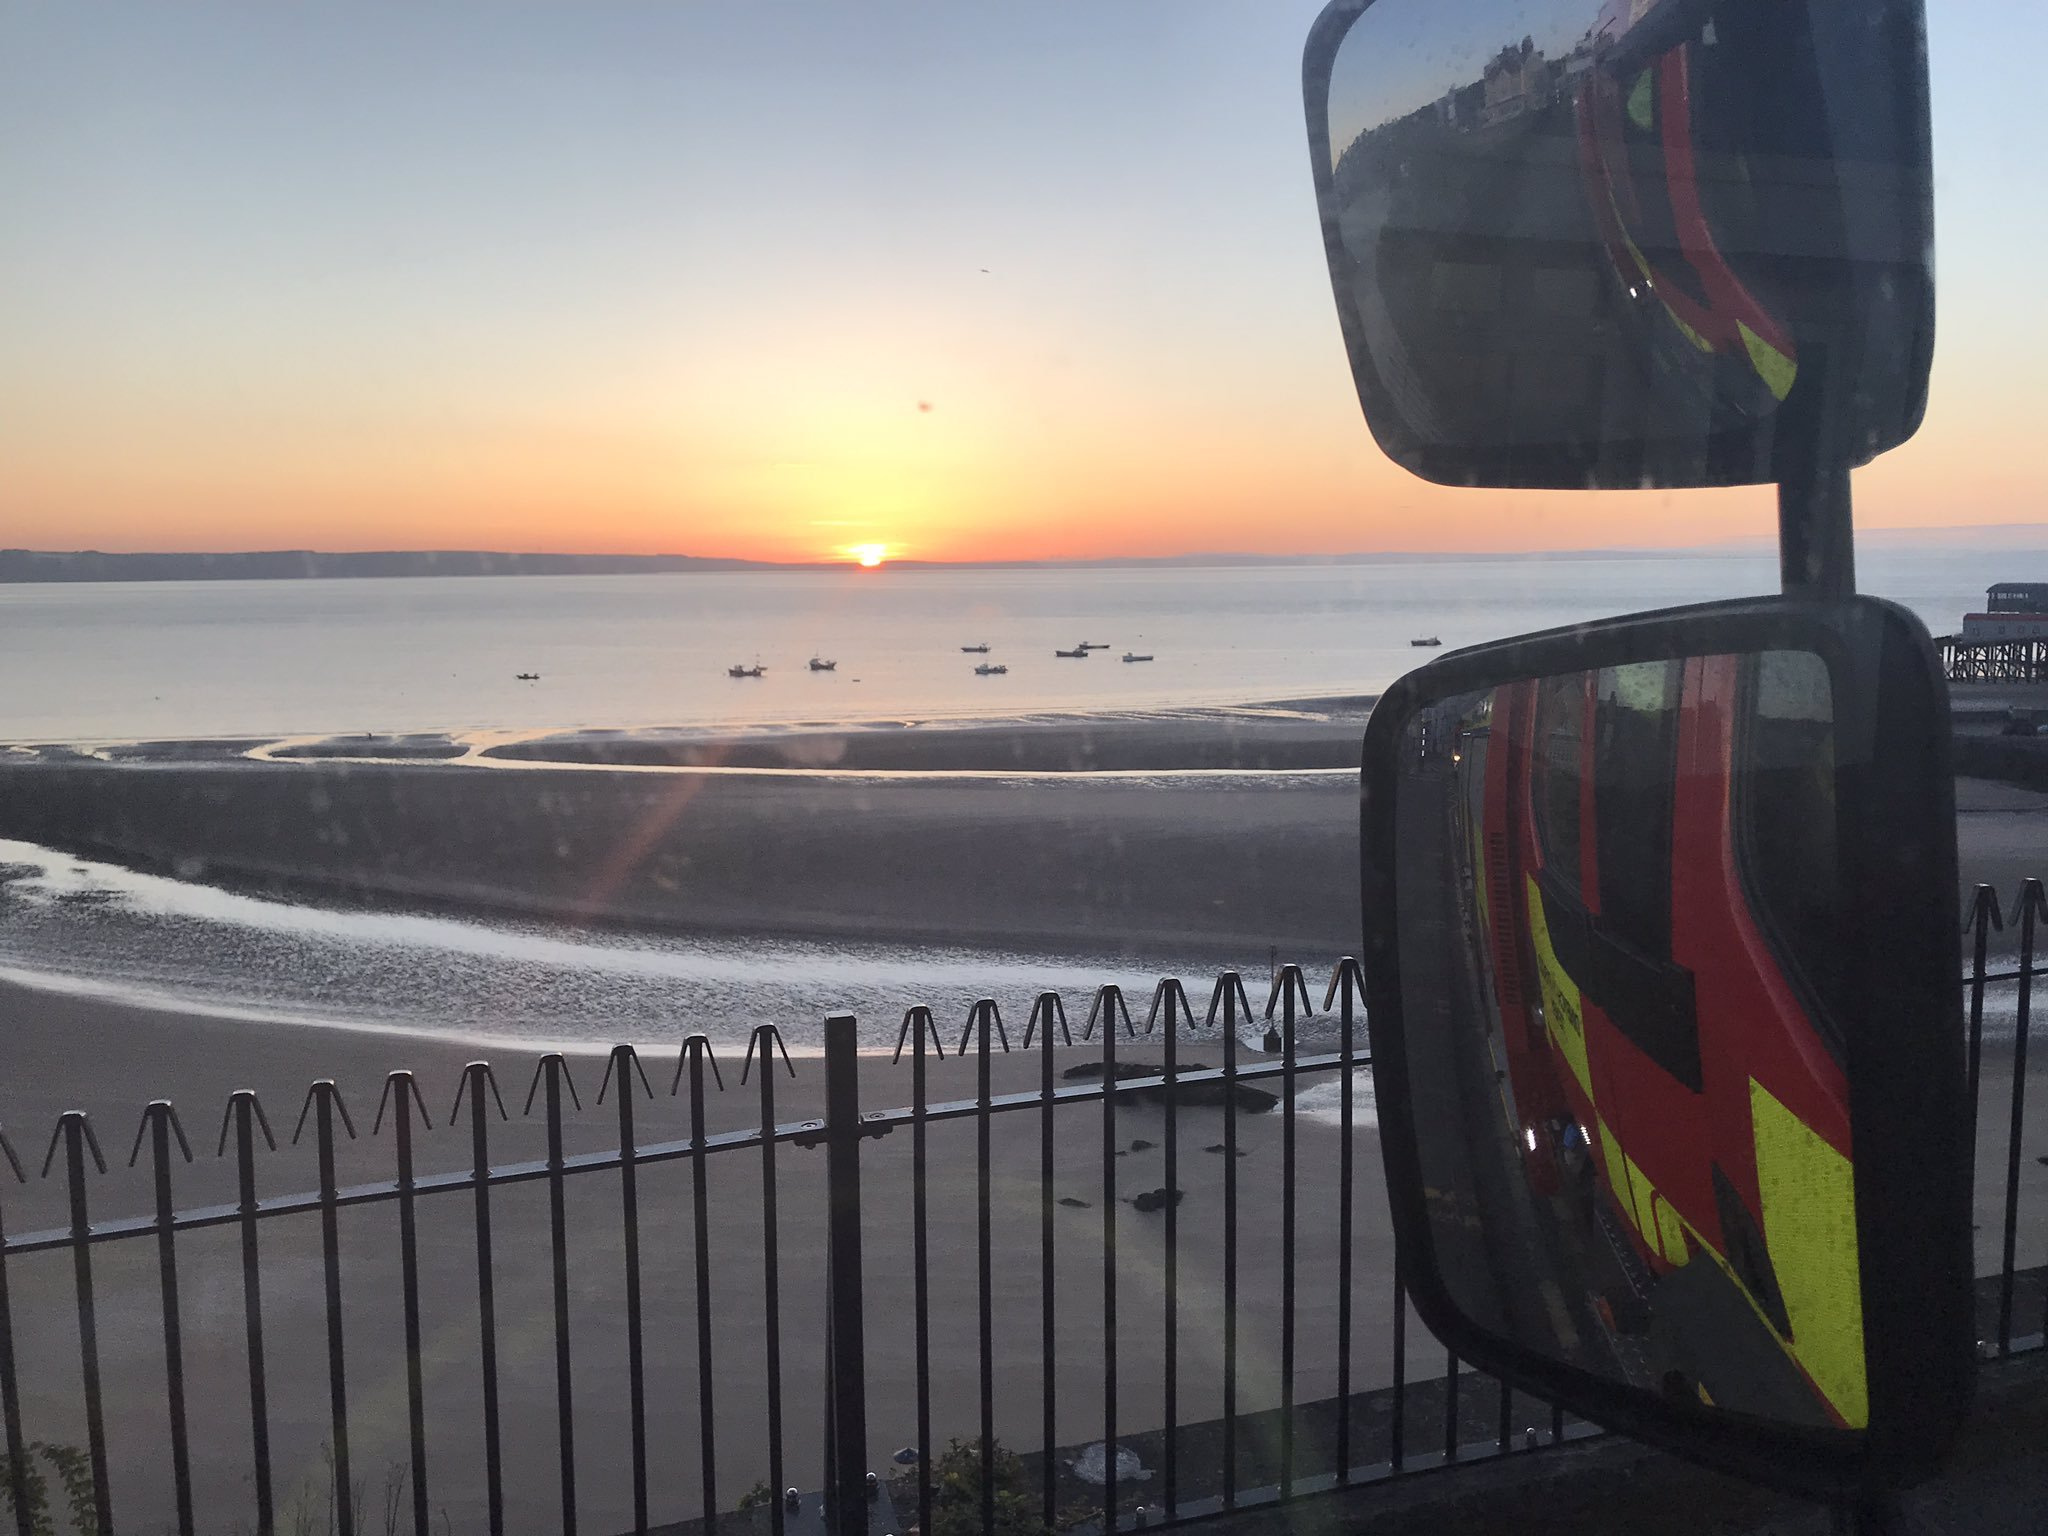 Firefighters returned back to the station as the sun rose. PICTURE: Tenby Fire Station via Twitter.